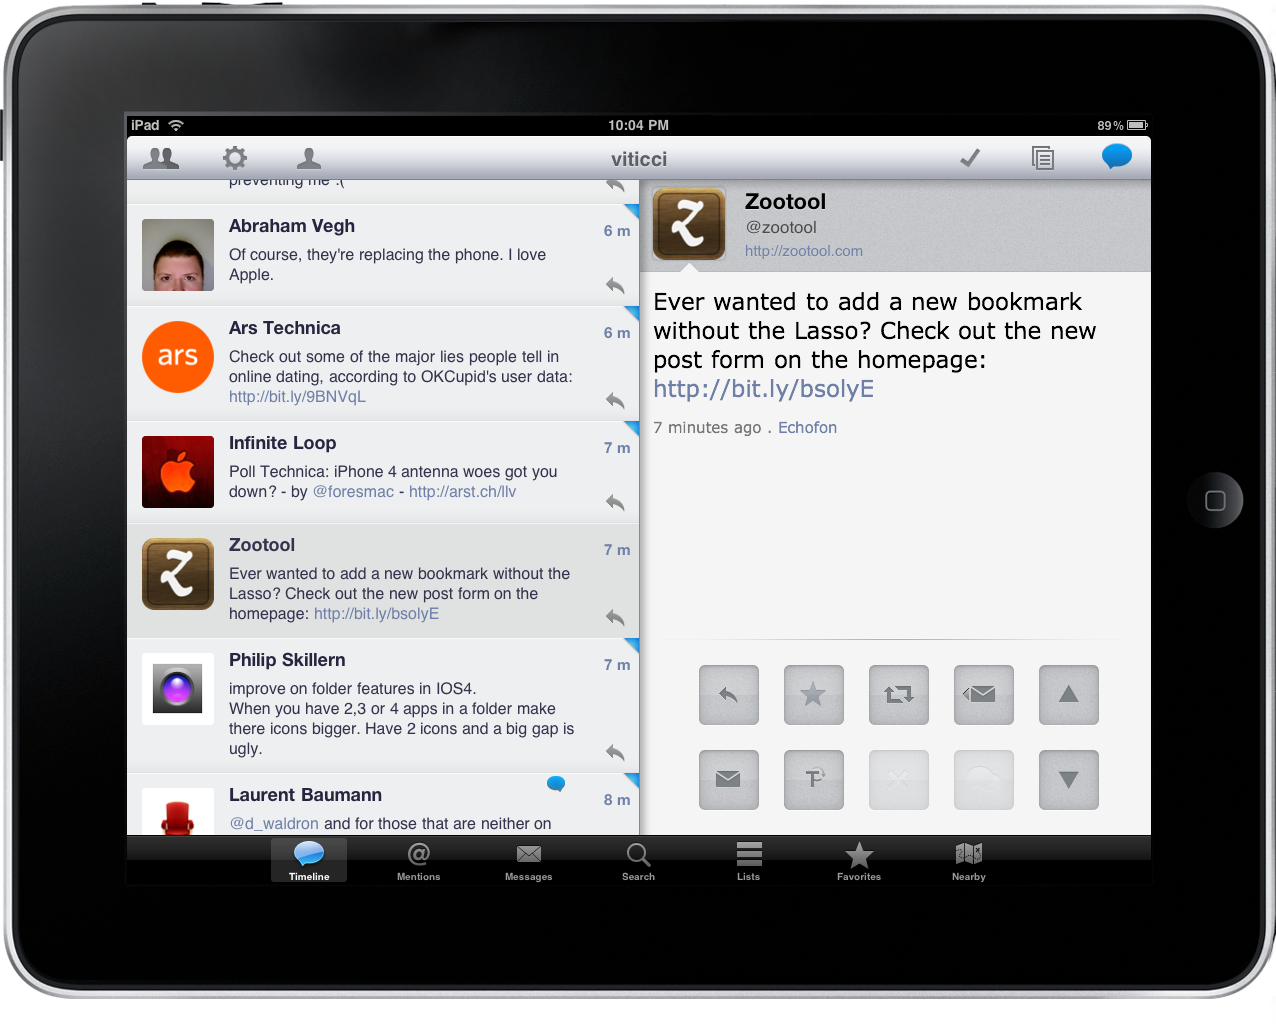 Osfoora HD: The Ultimate Twitter Client For IPad?